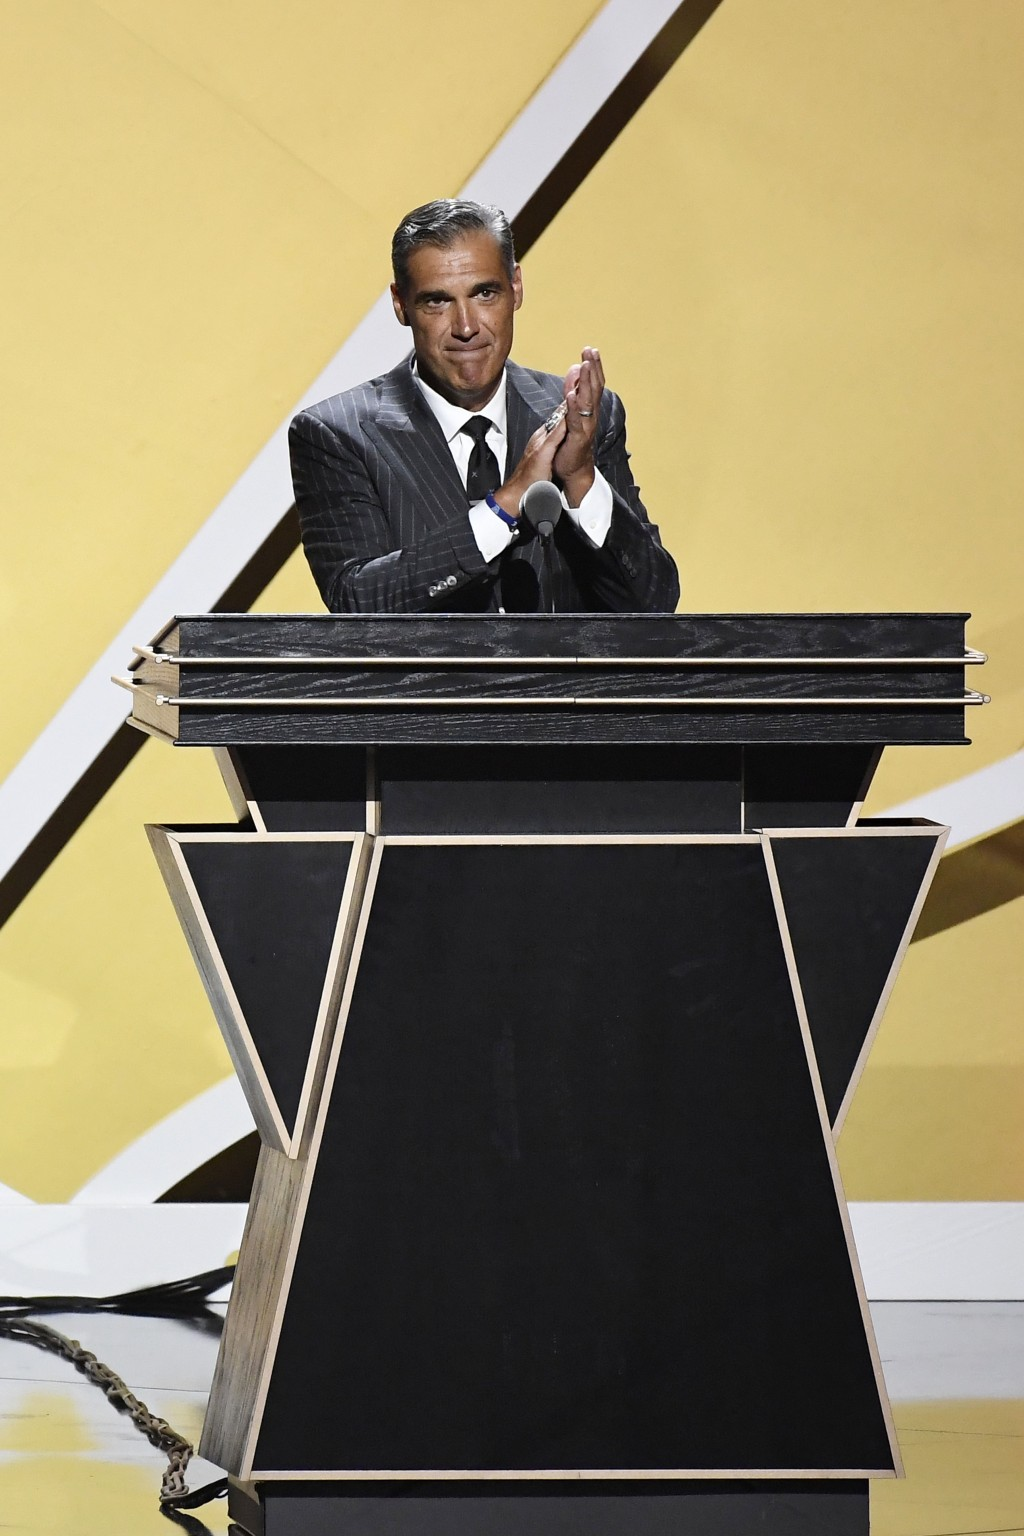 Inductee Jay Wright speaks during the 2021 Basketball Hall of Fame Enshrinement ceremony, Saturday, Sept. 11, 2021, in Springfield, Mass. (AP Photo/Je...